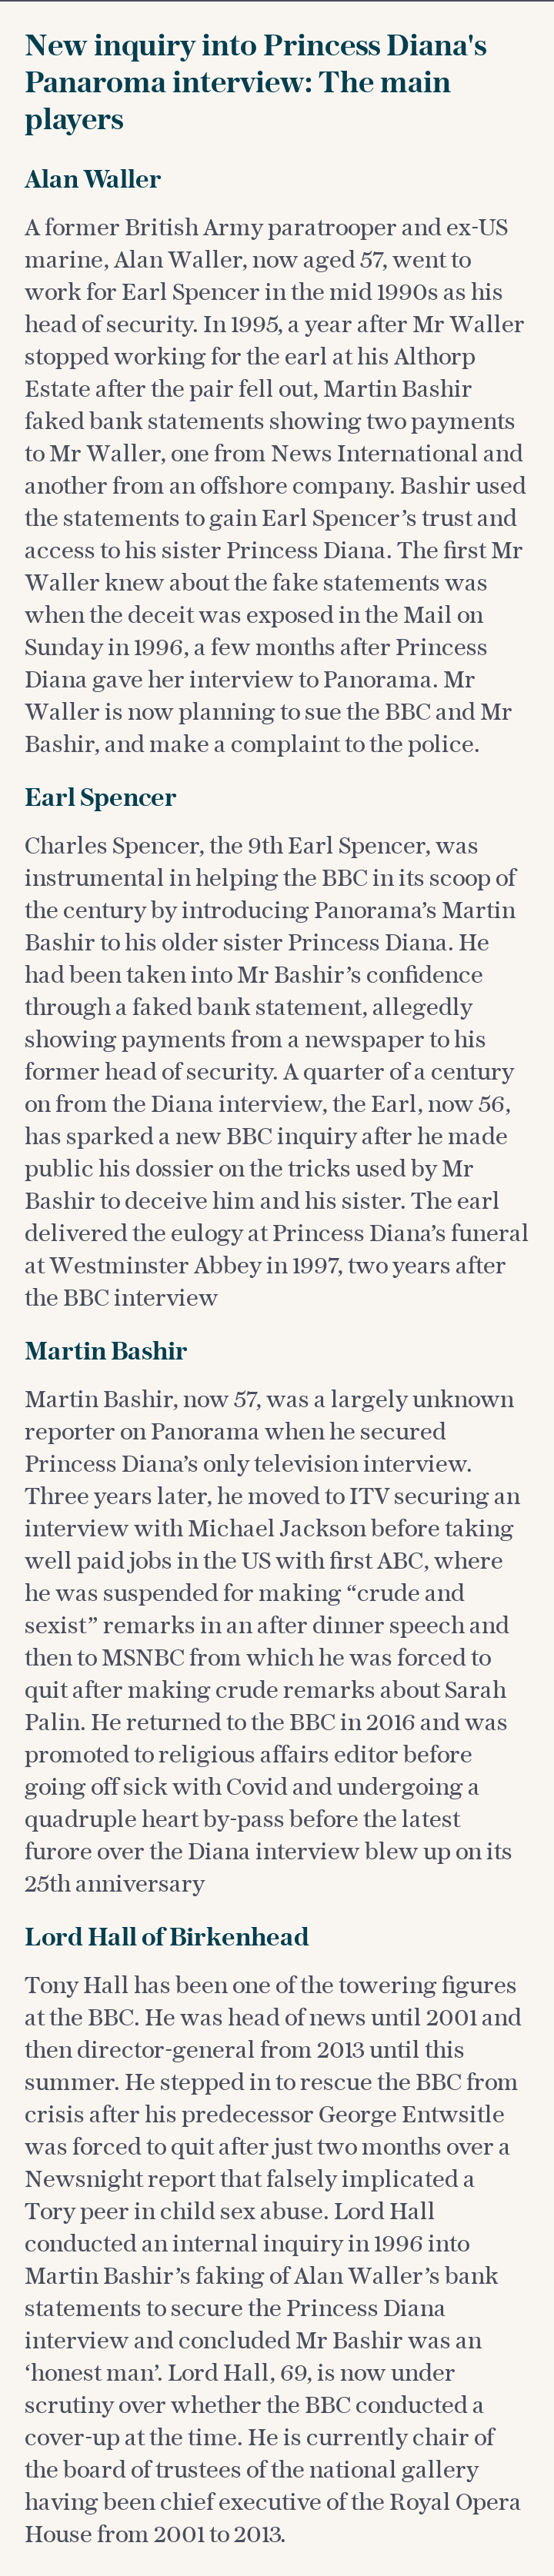 New inquiry into Princess Diana's Panaroma interview: The main players